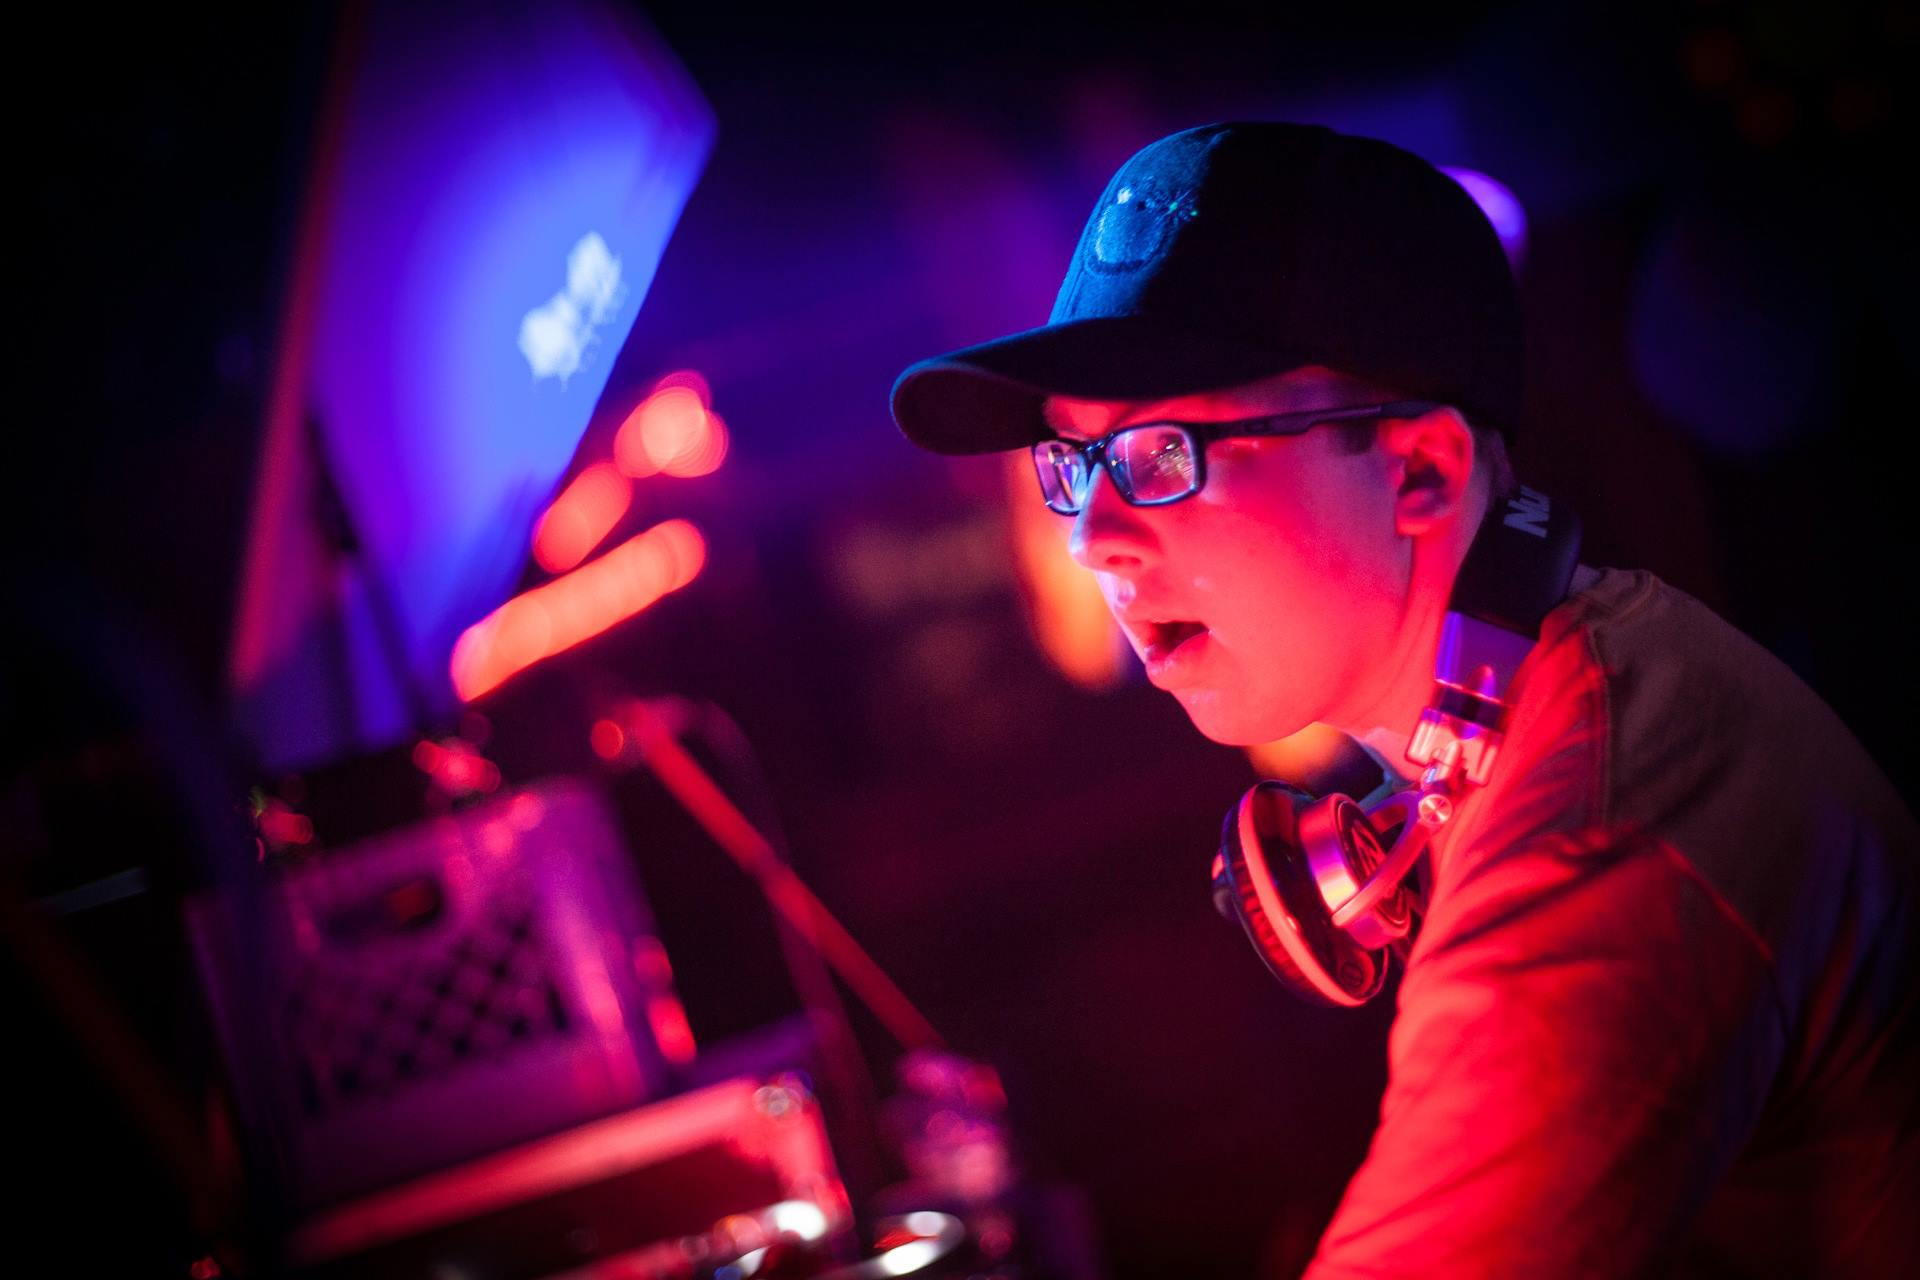 DJ Seebaum Loses Battle With Brain Cancer at Age 16